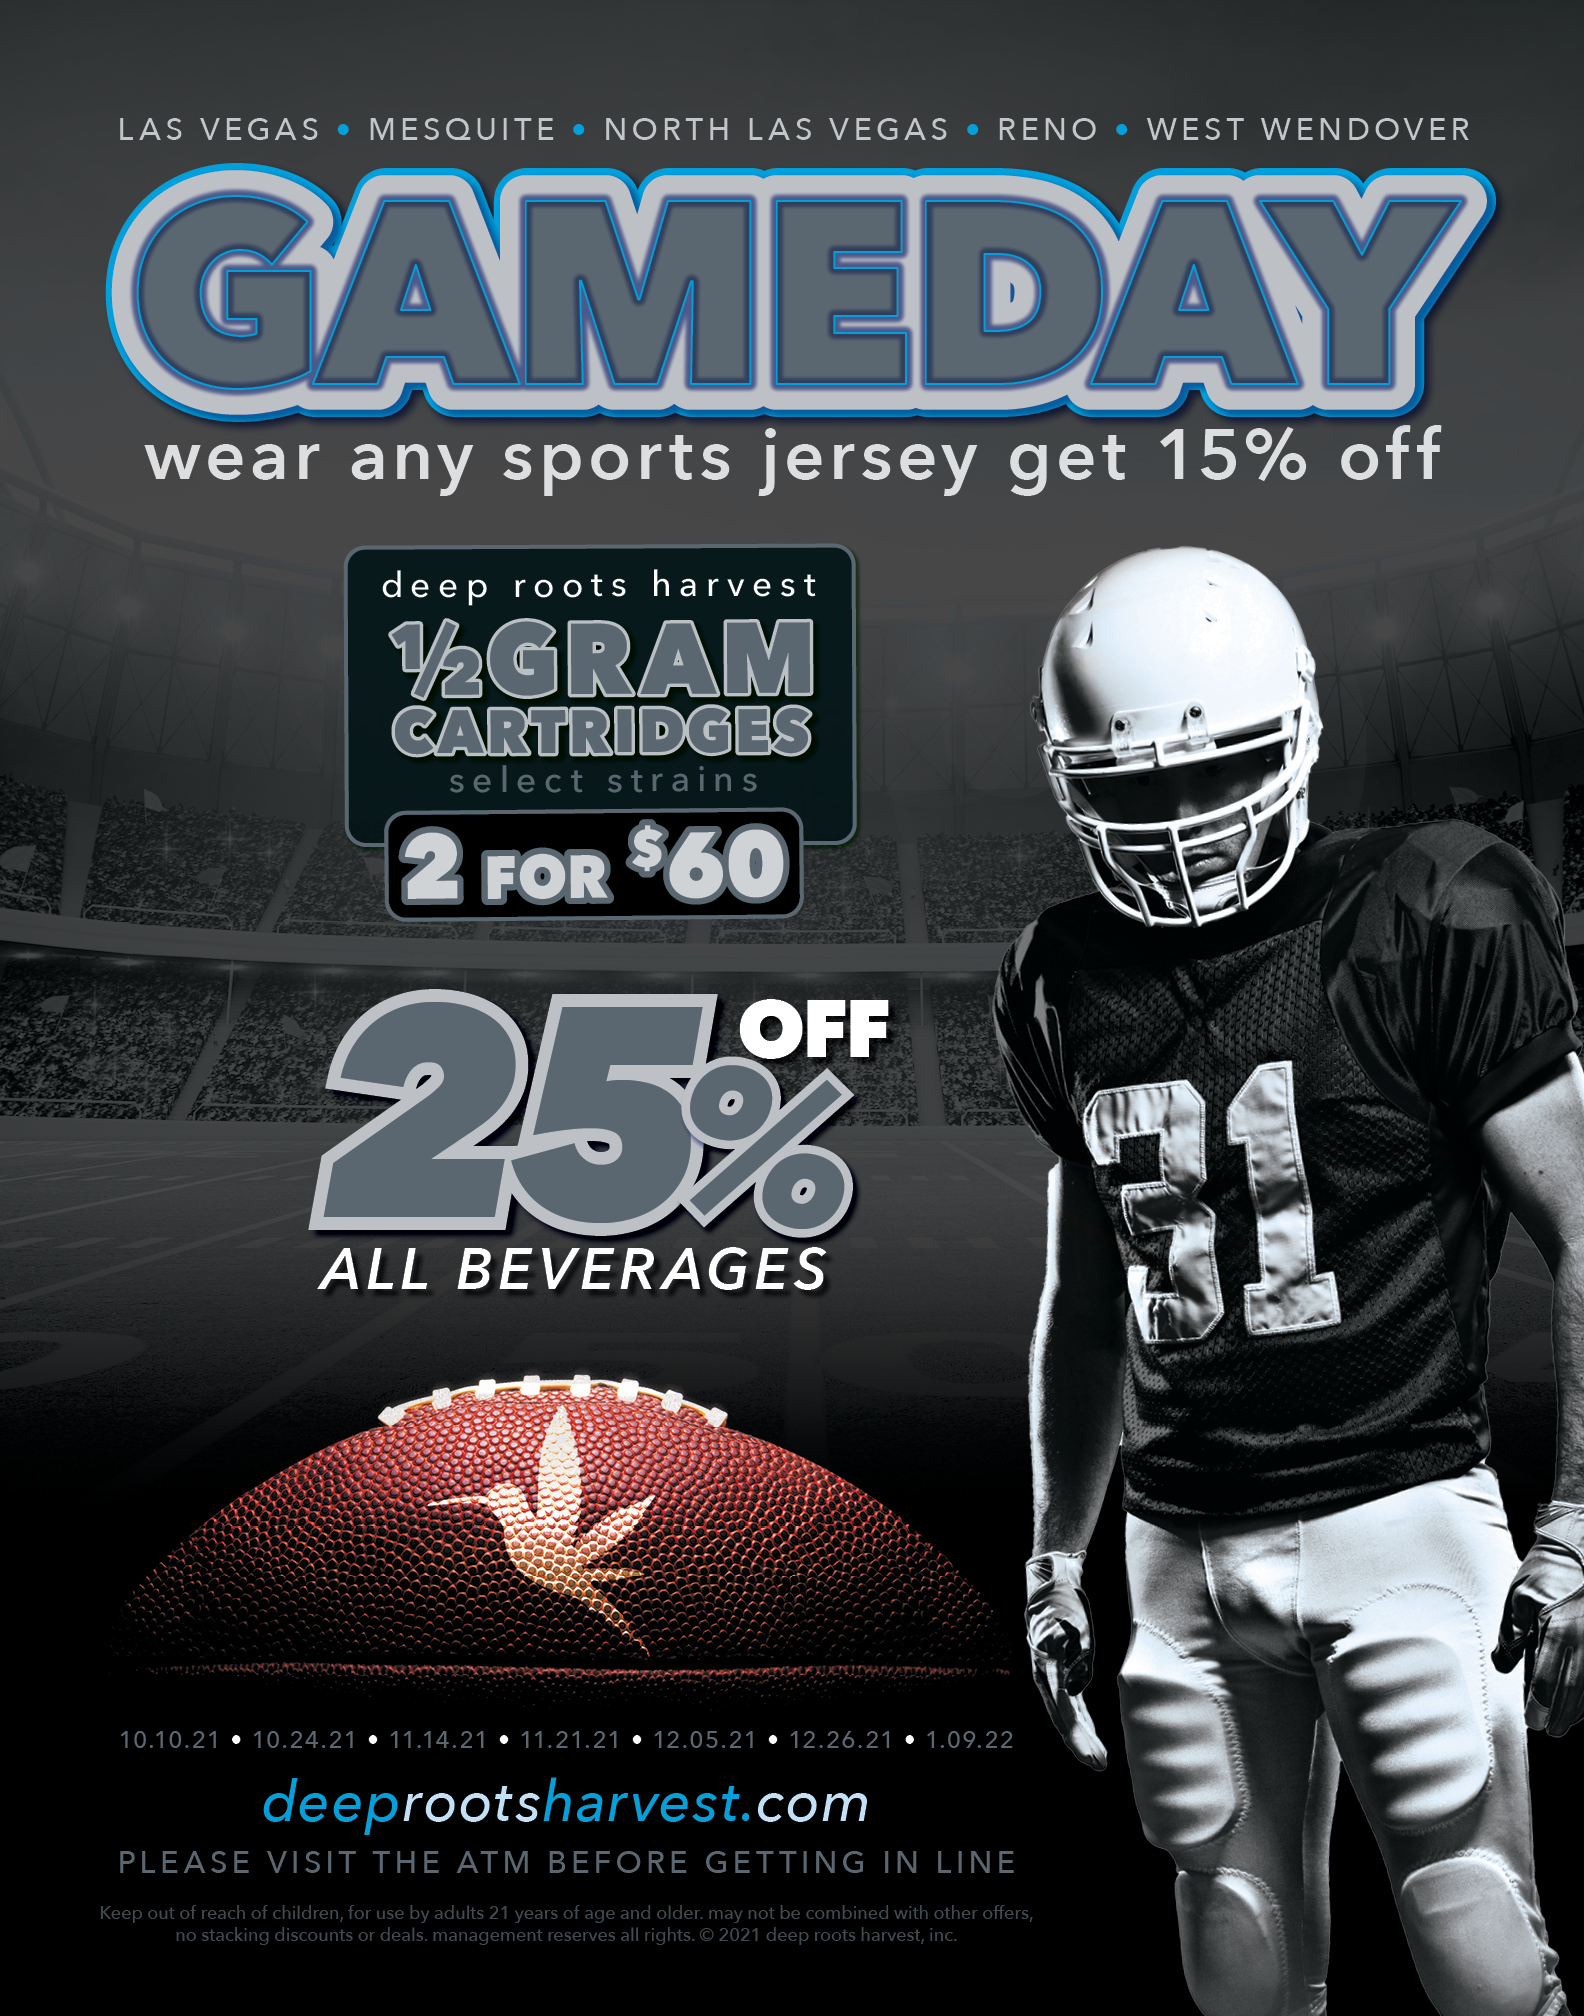 NFL Game Day Promo Deep Rotos Harvest. Wear any sports jersey get 15% off. Deep Roots Harvest half gram cartridges buy 2 for $60 on select strains. 25% off all beverages.